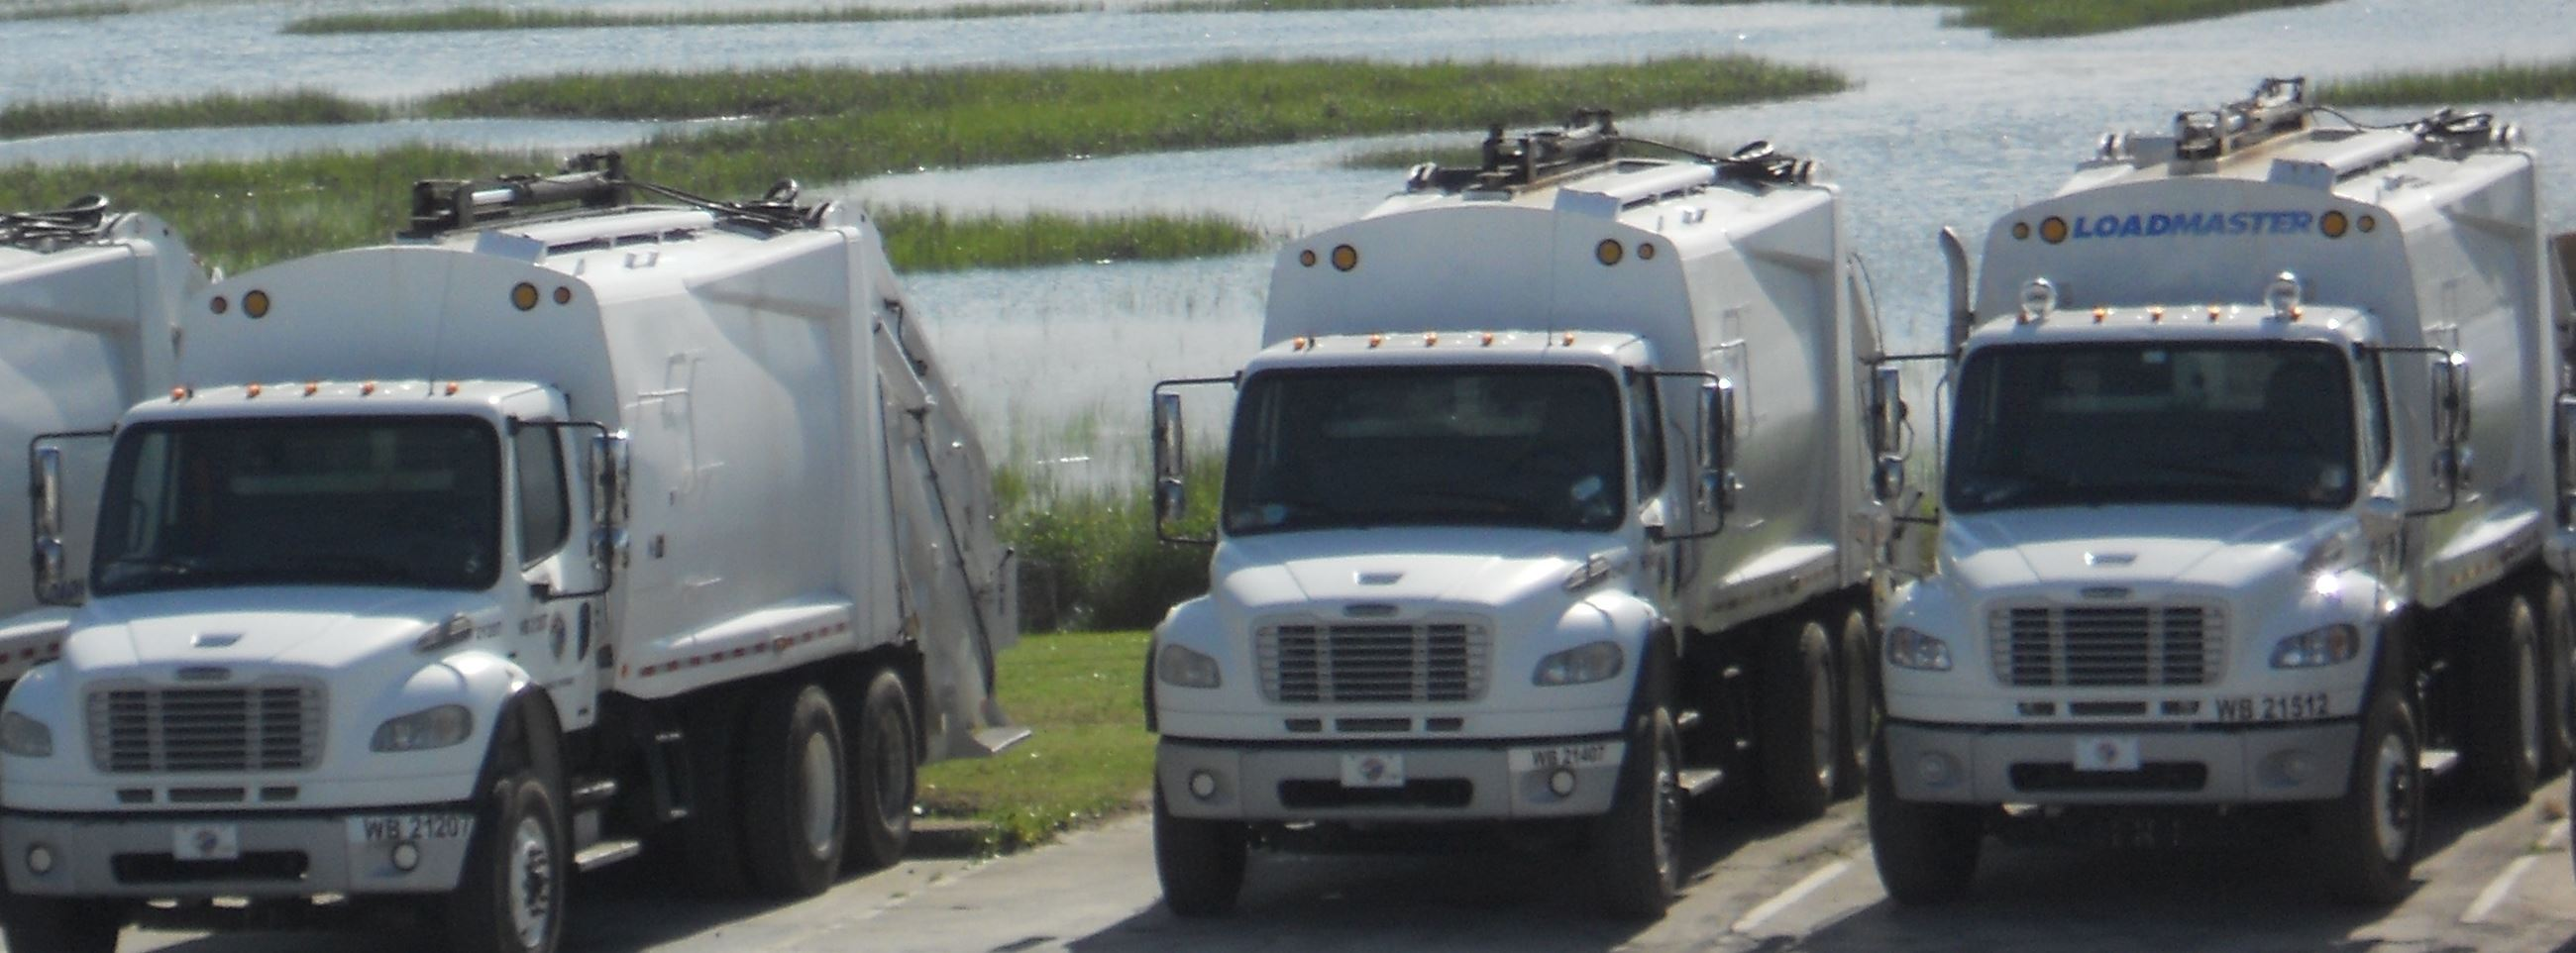 Trash Trucks 3 - Cropped